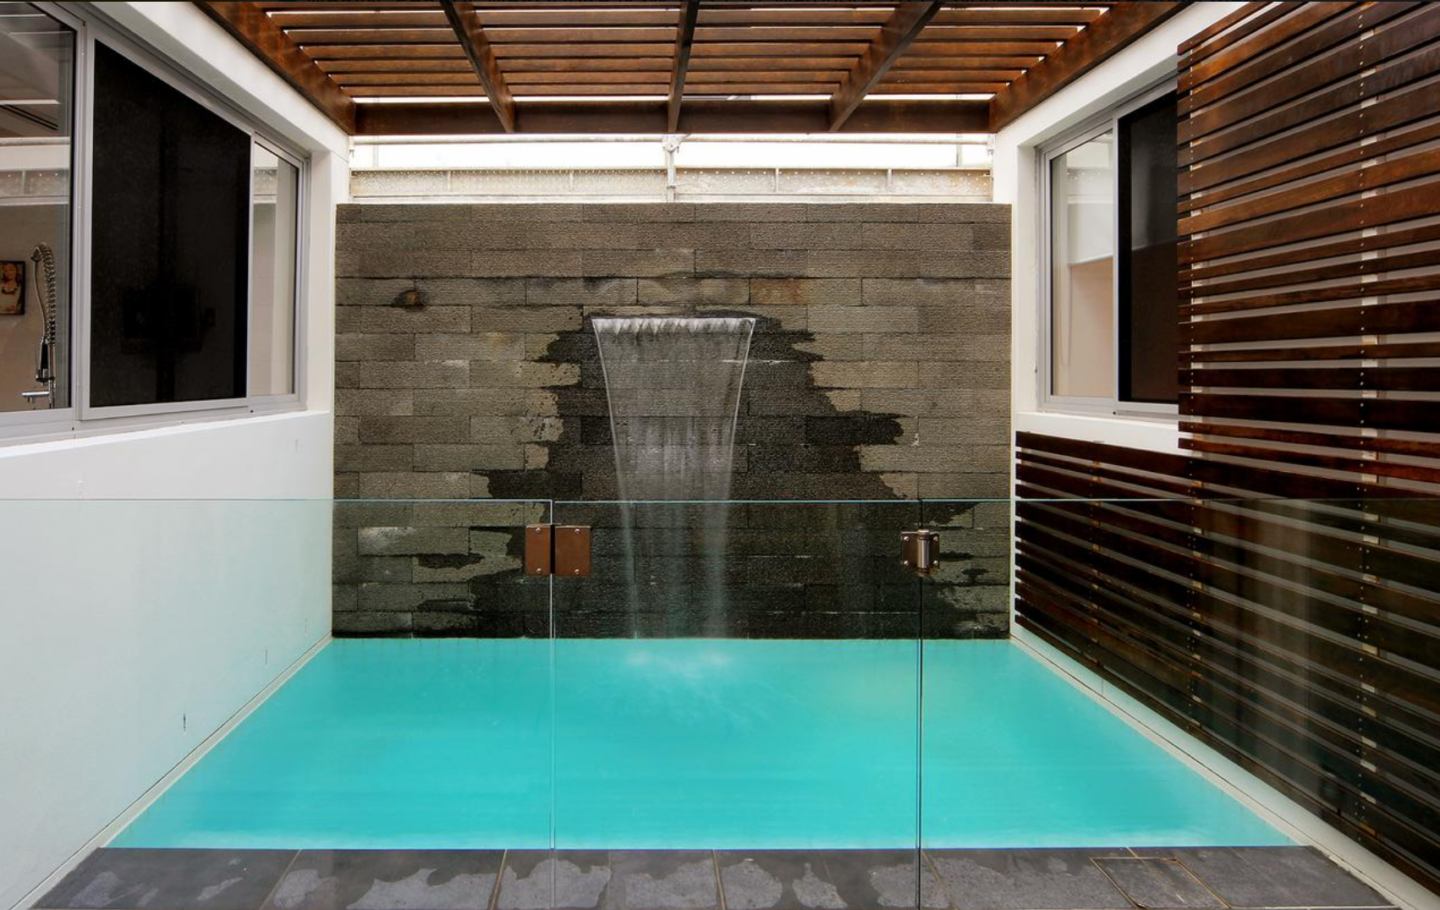 Pool at Maroubra Beach House - Sydney, Australia on Booking.com - thecasualfree.com